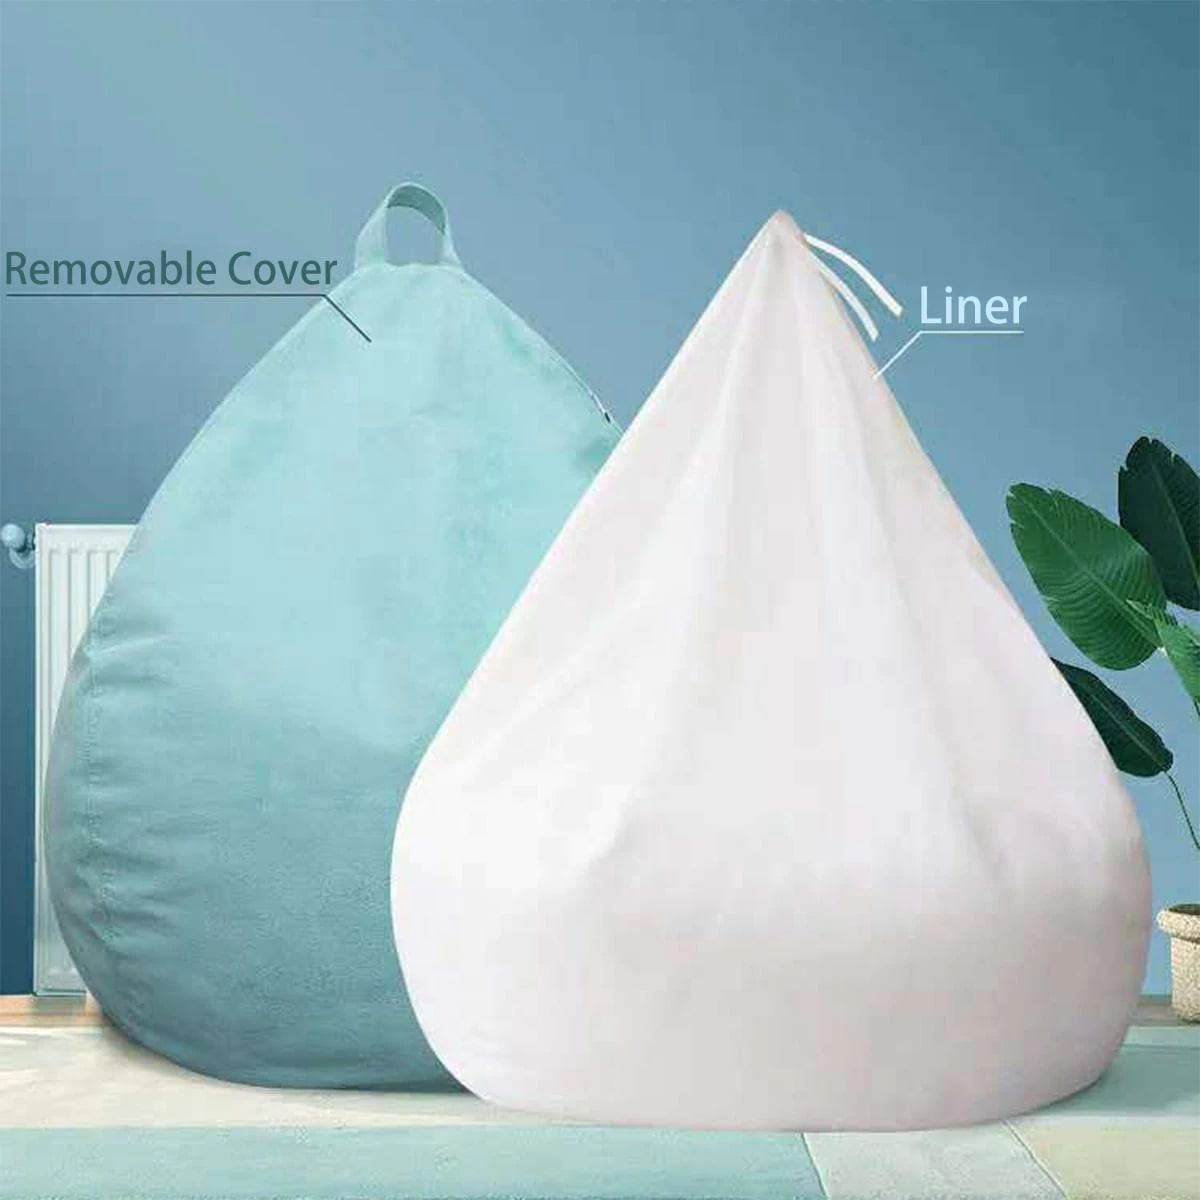 bean bag with liner and removable cover